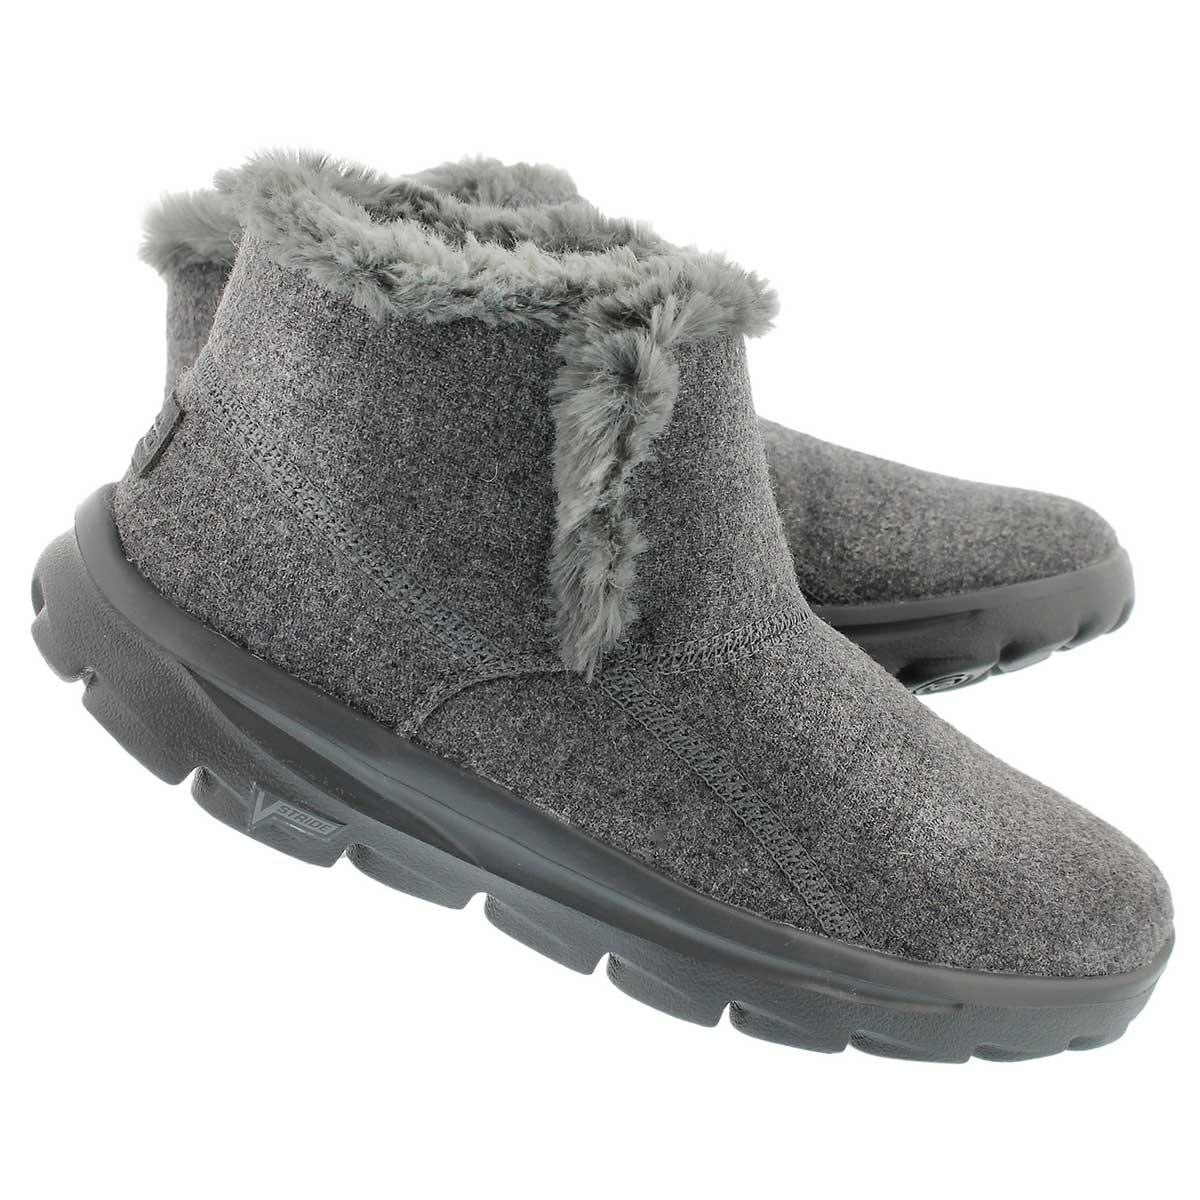 Lds GOwalk Move charcoal chugga bootie